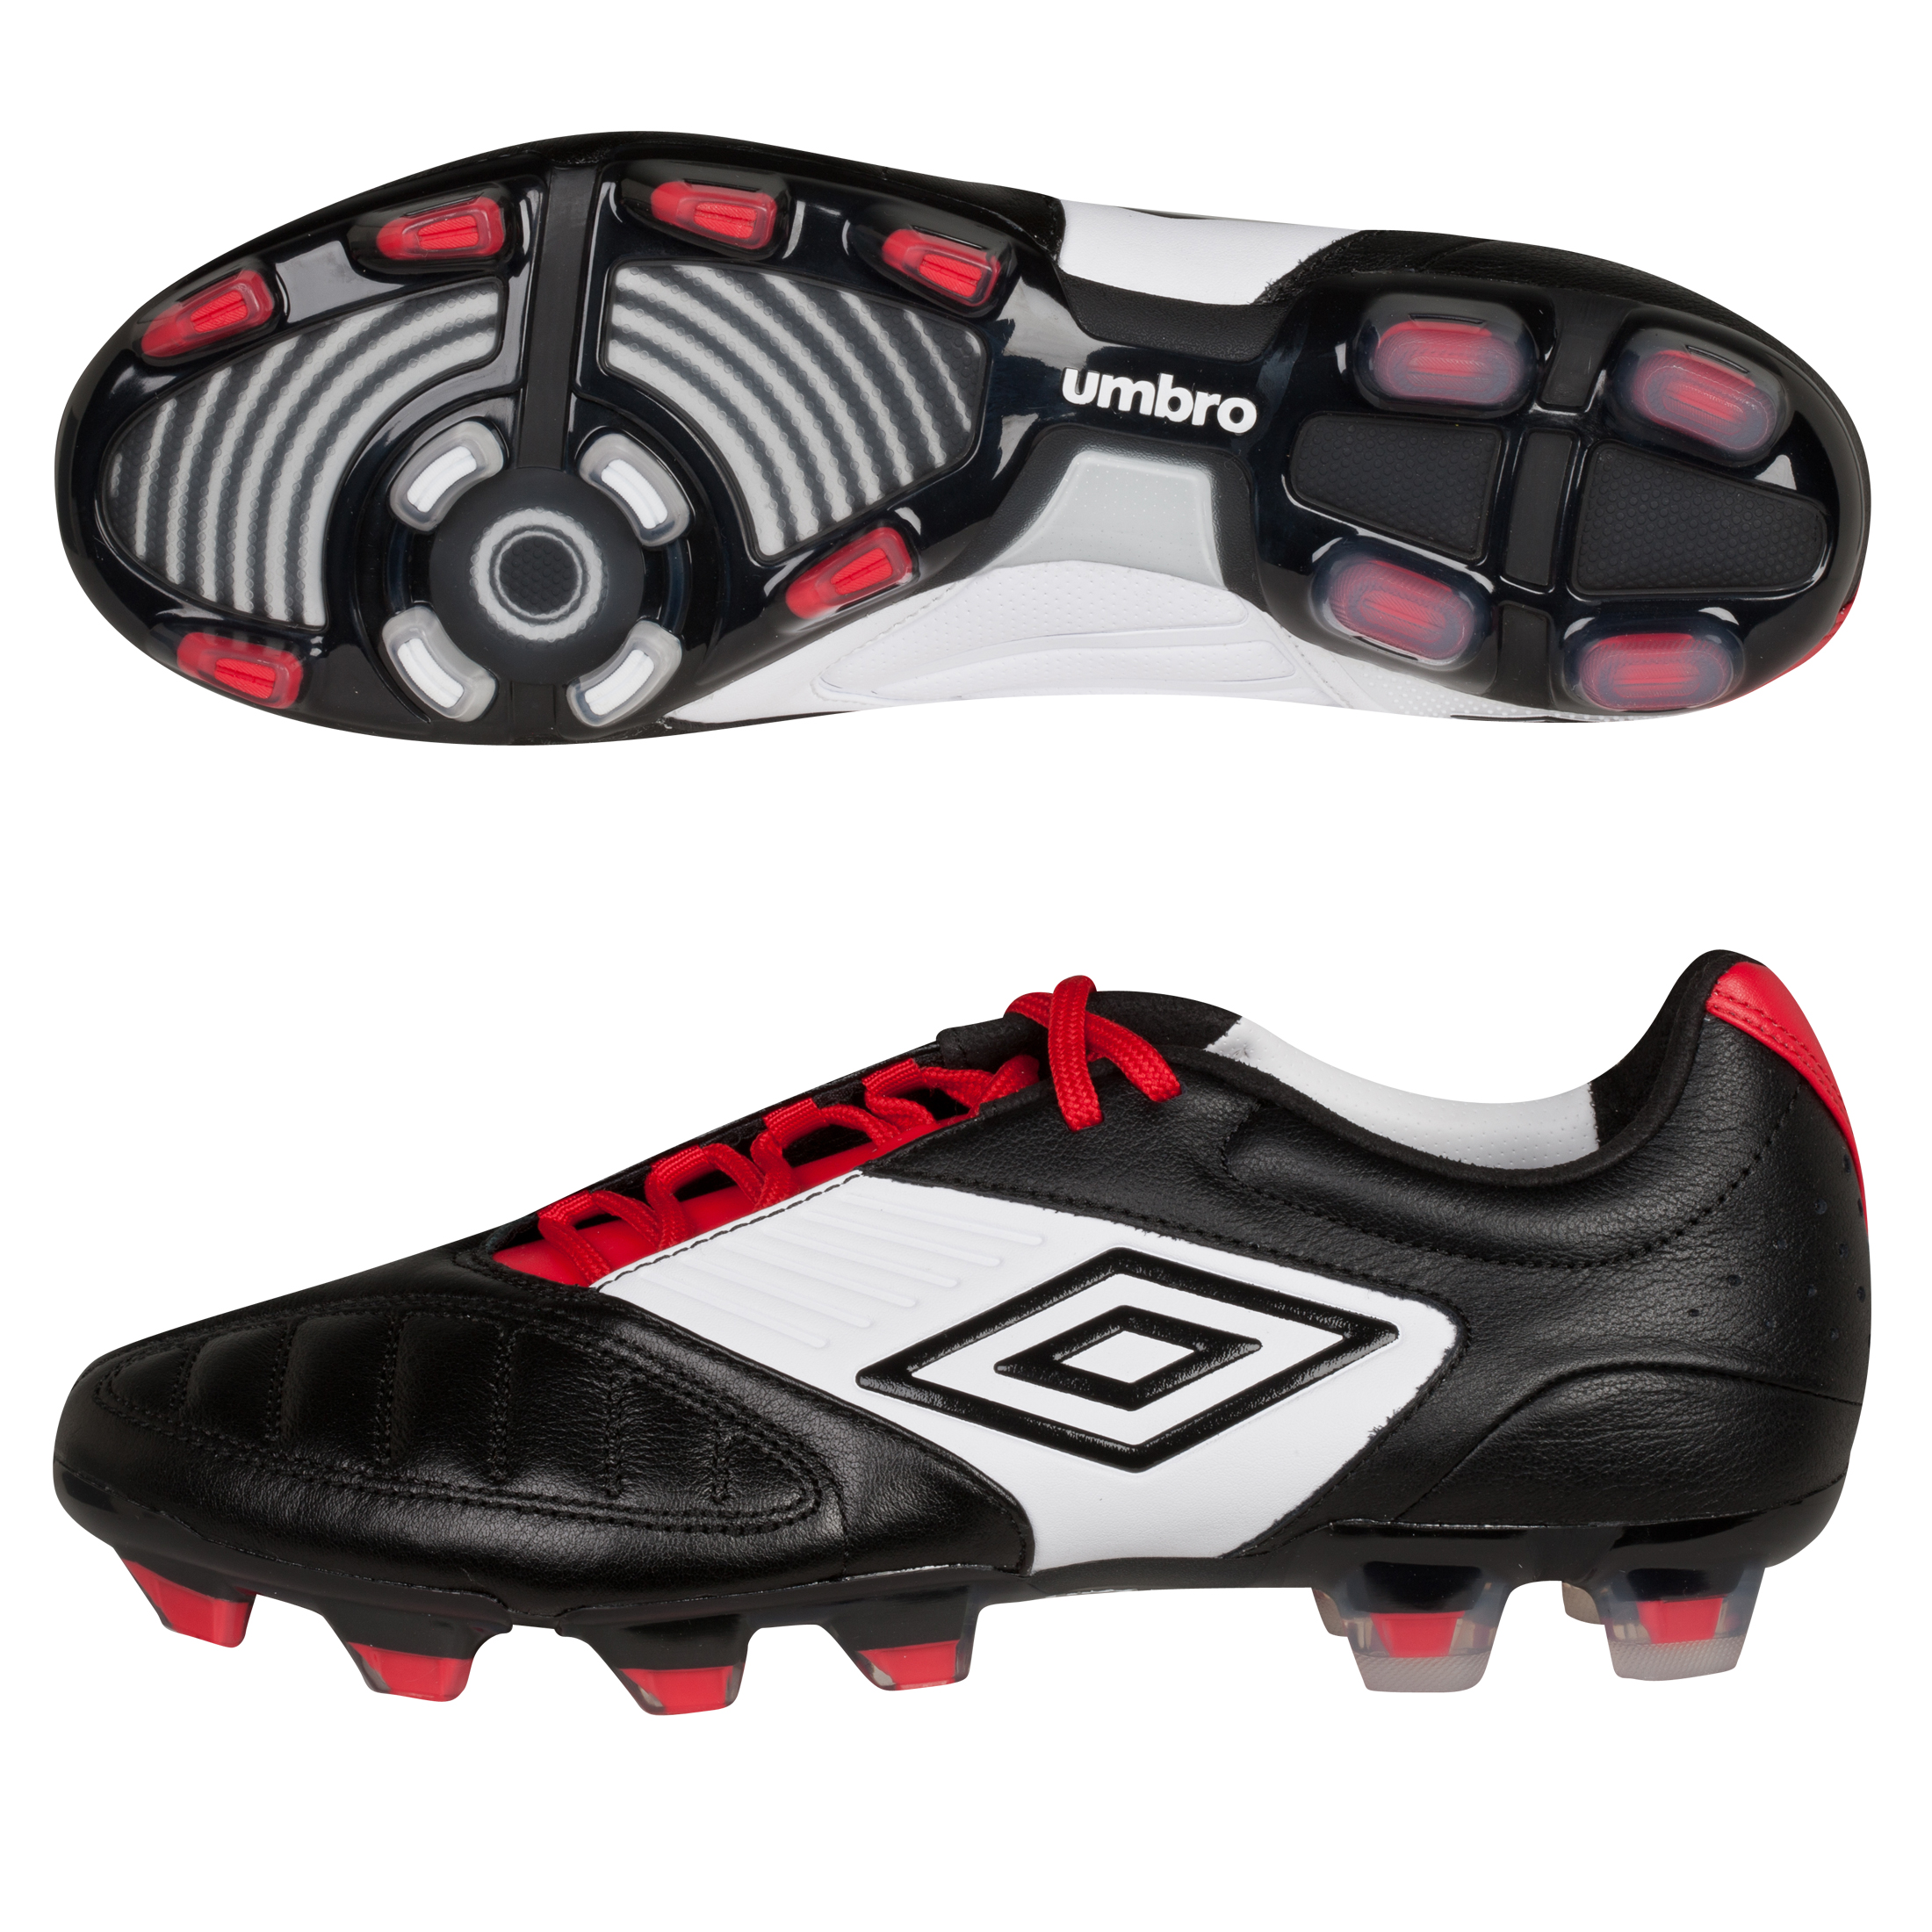 Umbro Geometra Pro Firm Ground Football Boots - Black/White/True Red